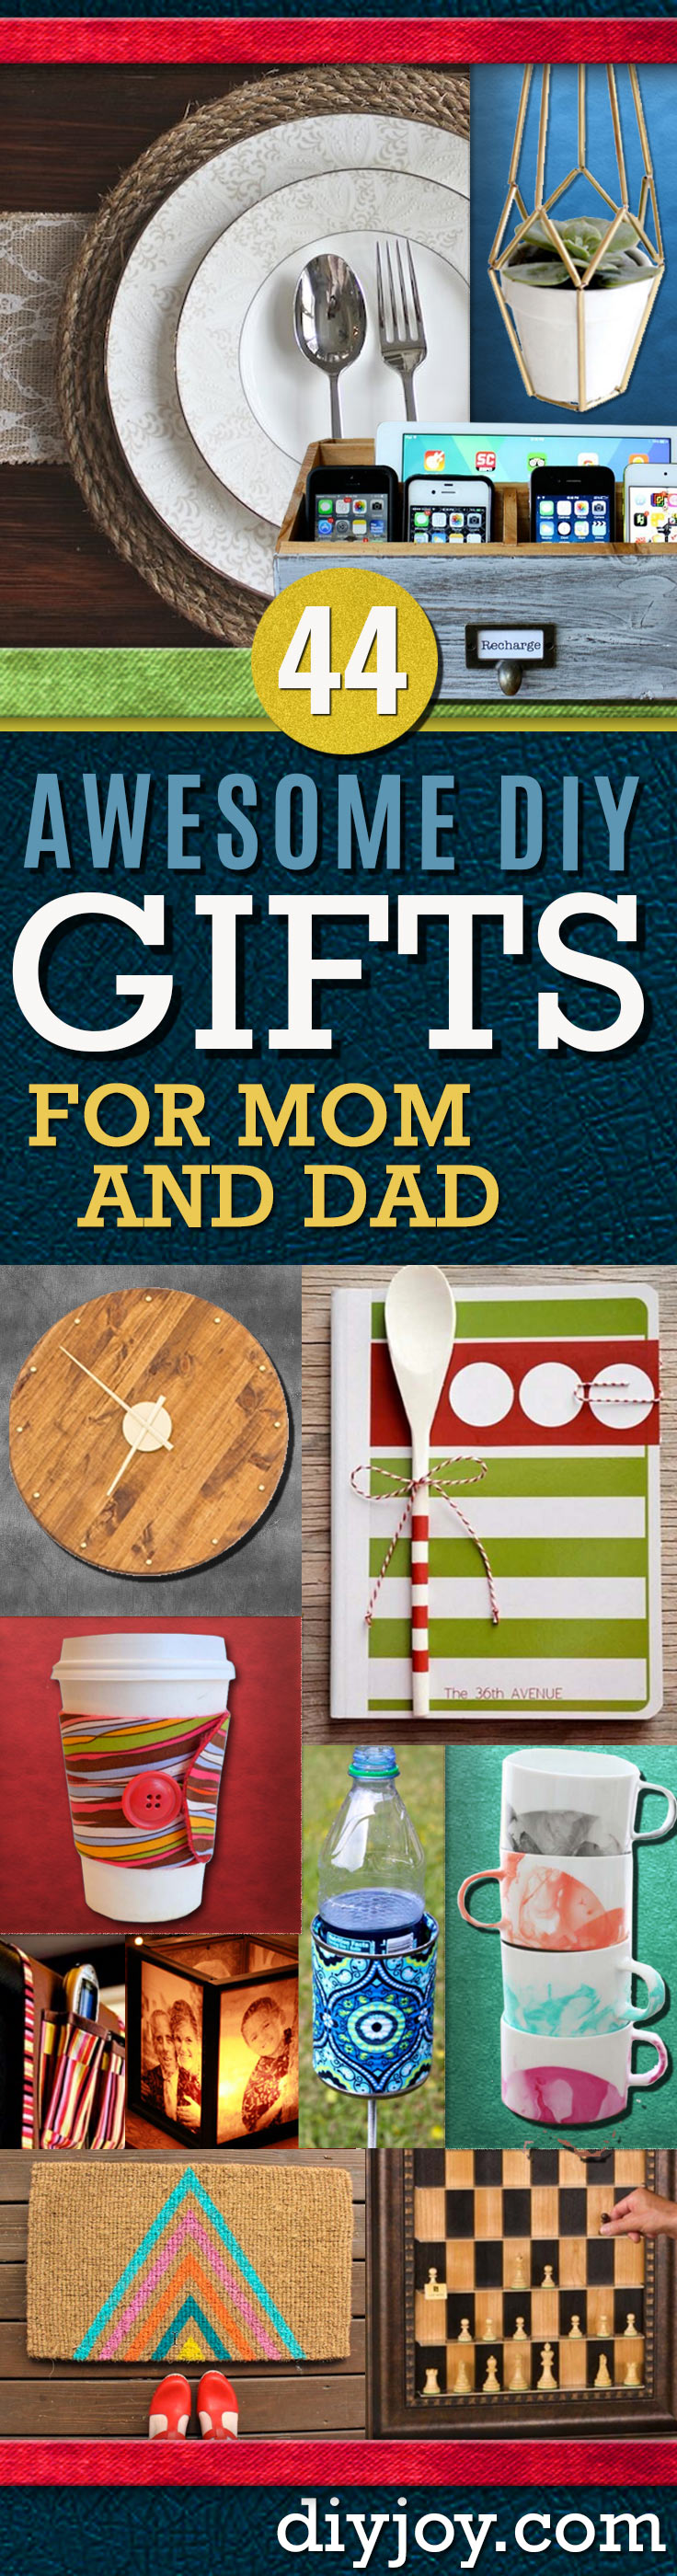 Awesome diy gift ideas mom and dad will love diy gifts for mom and dad homemade christmas gift ideas for your parents cool solutioingenieria